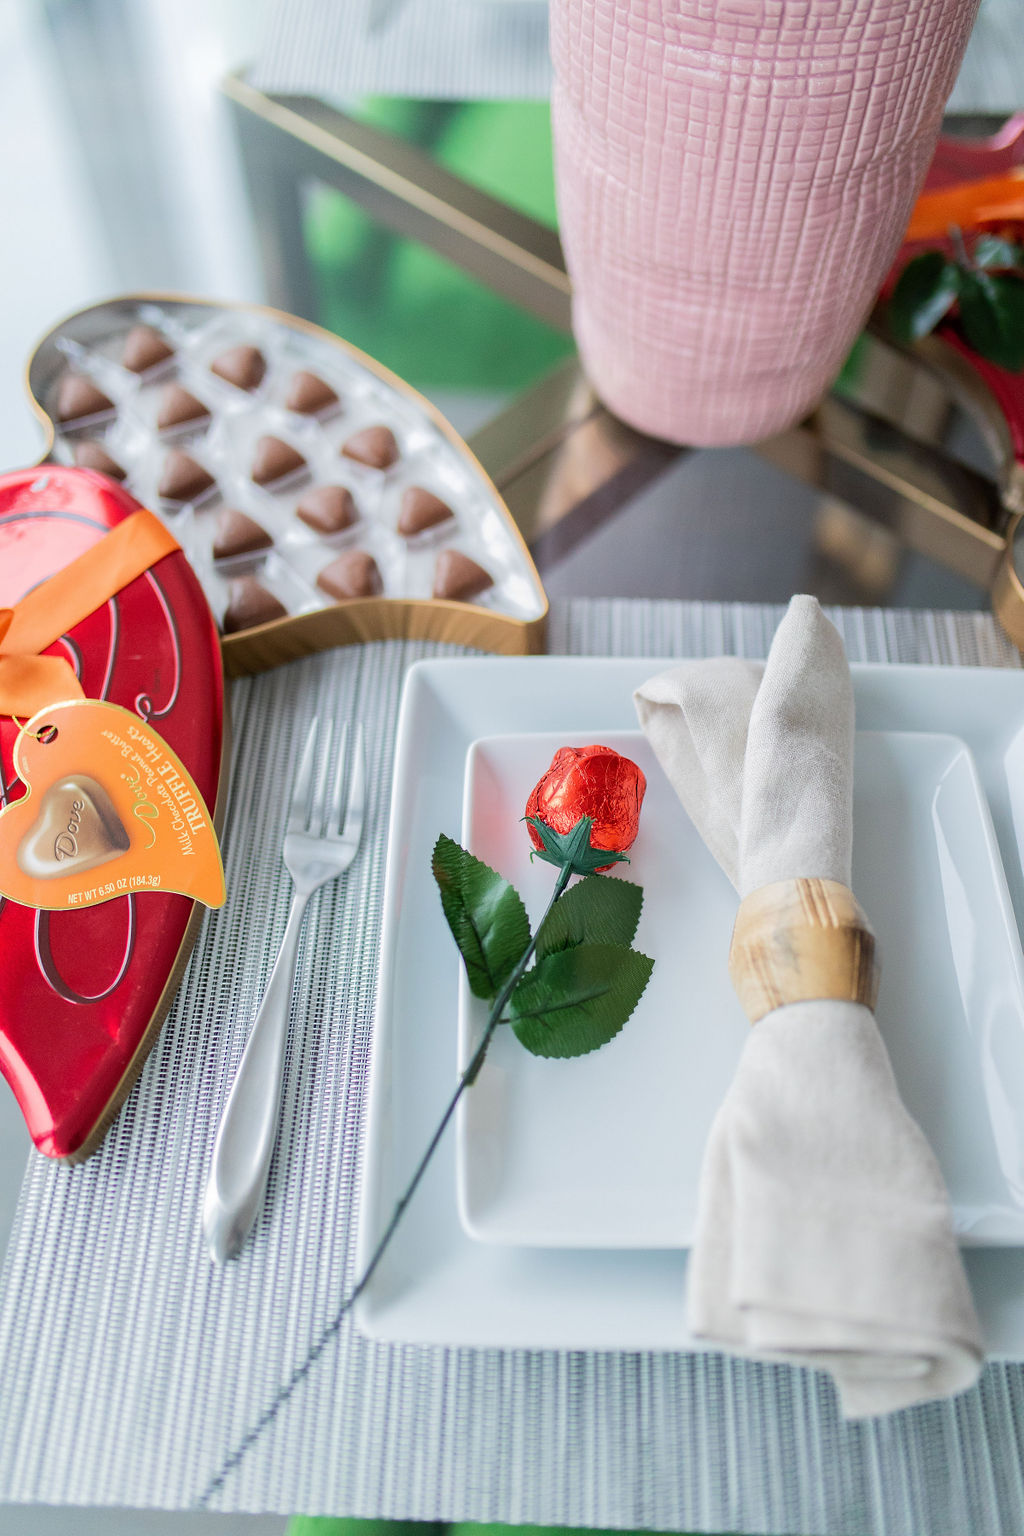 Decorating tips for Galentine's day